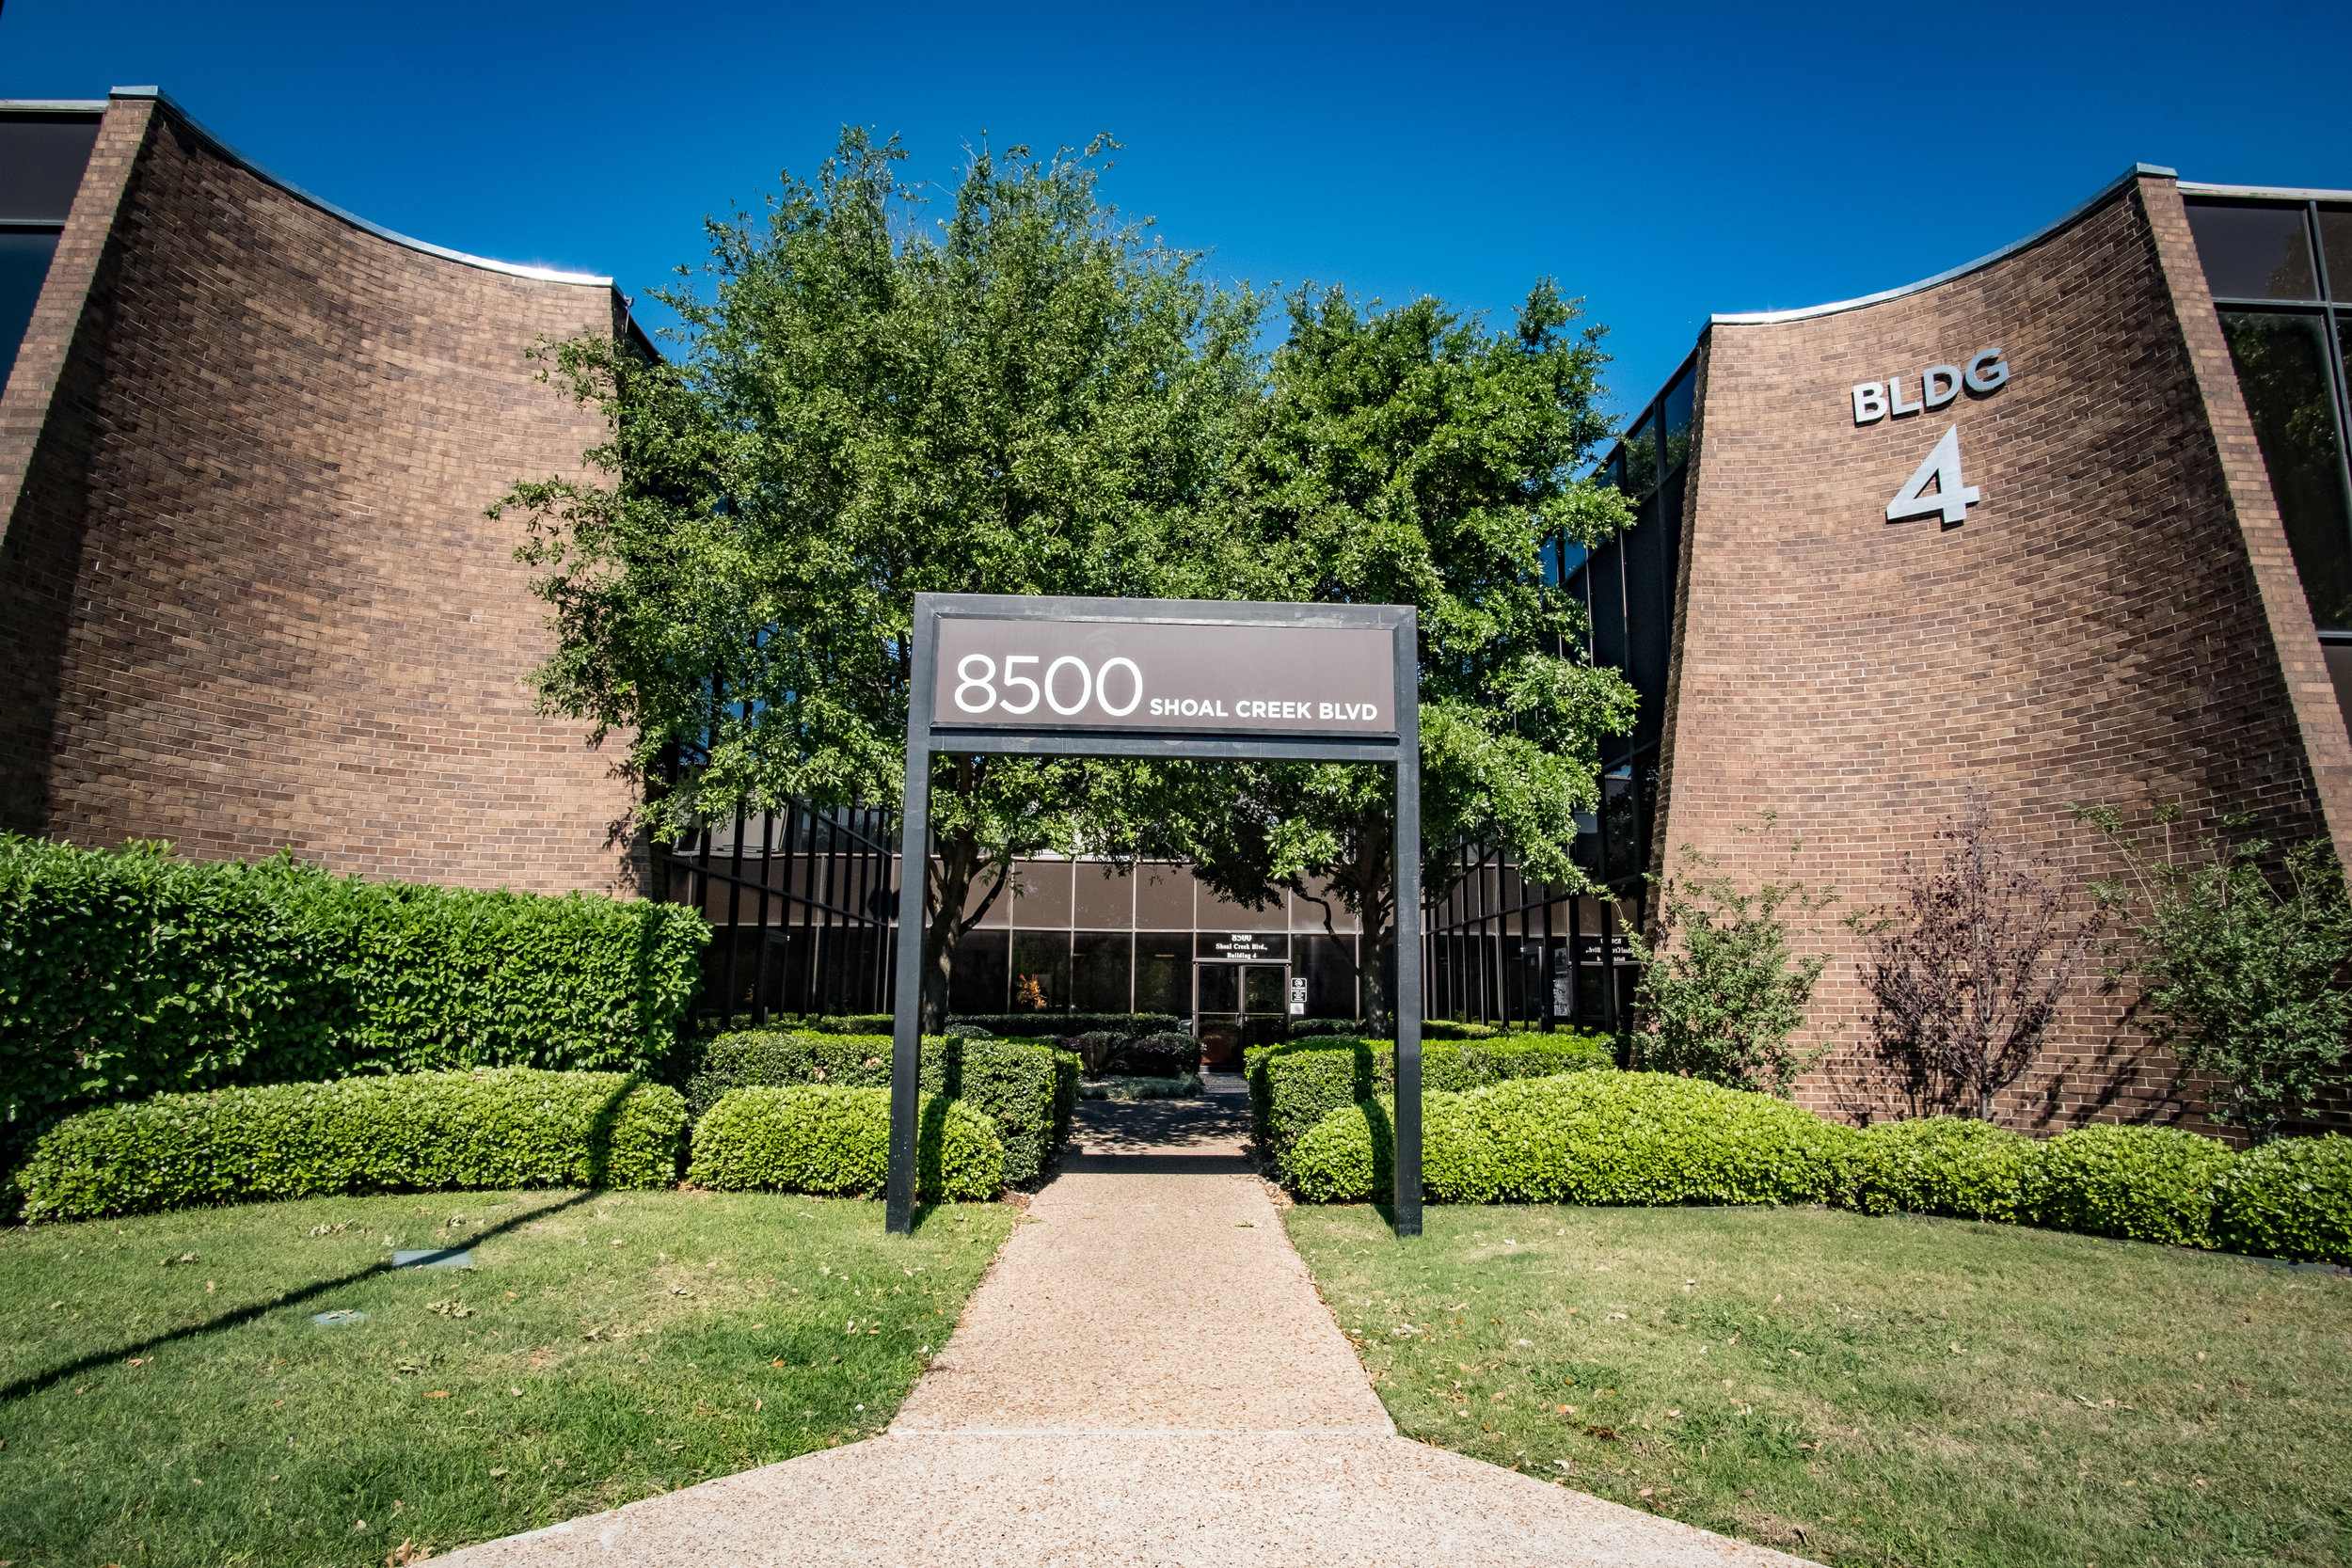 NORTH: 8500 Shoal Creek, Bldg. 4, #202